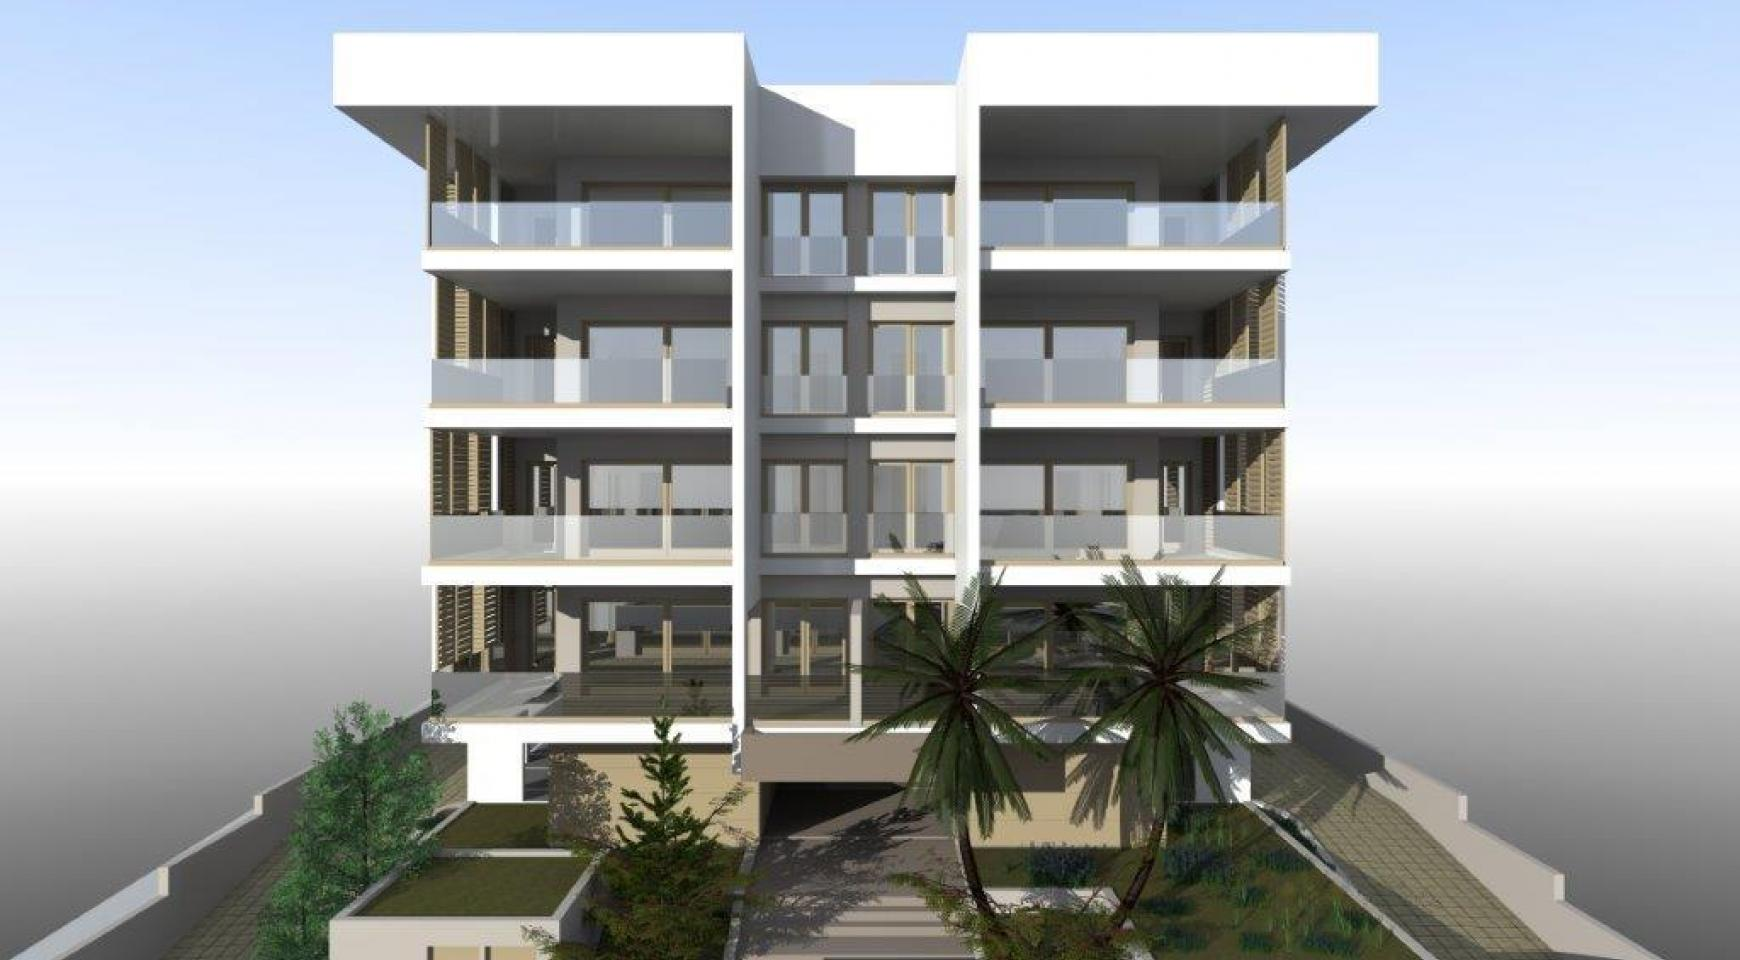 New Spacious 3 Bedroom Apartment  near the Sea - 9